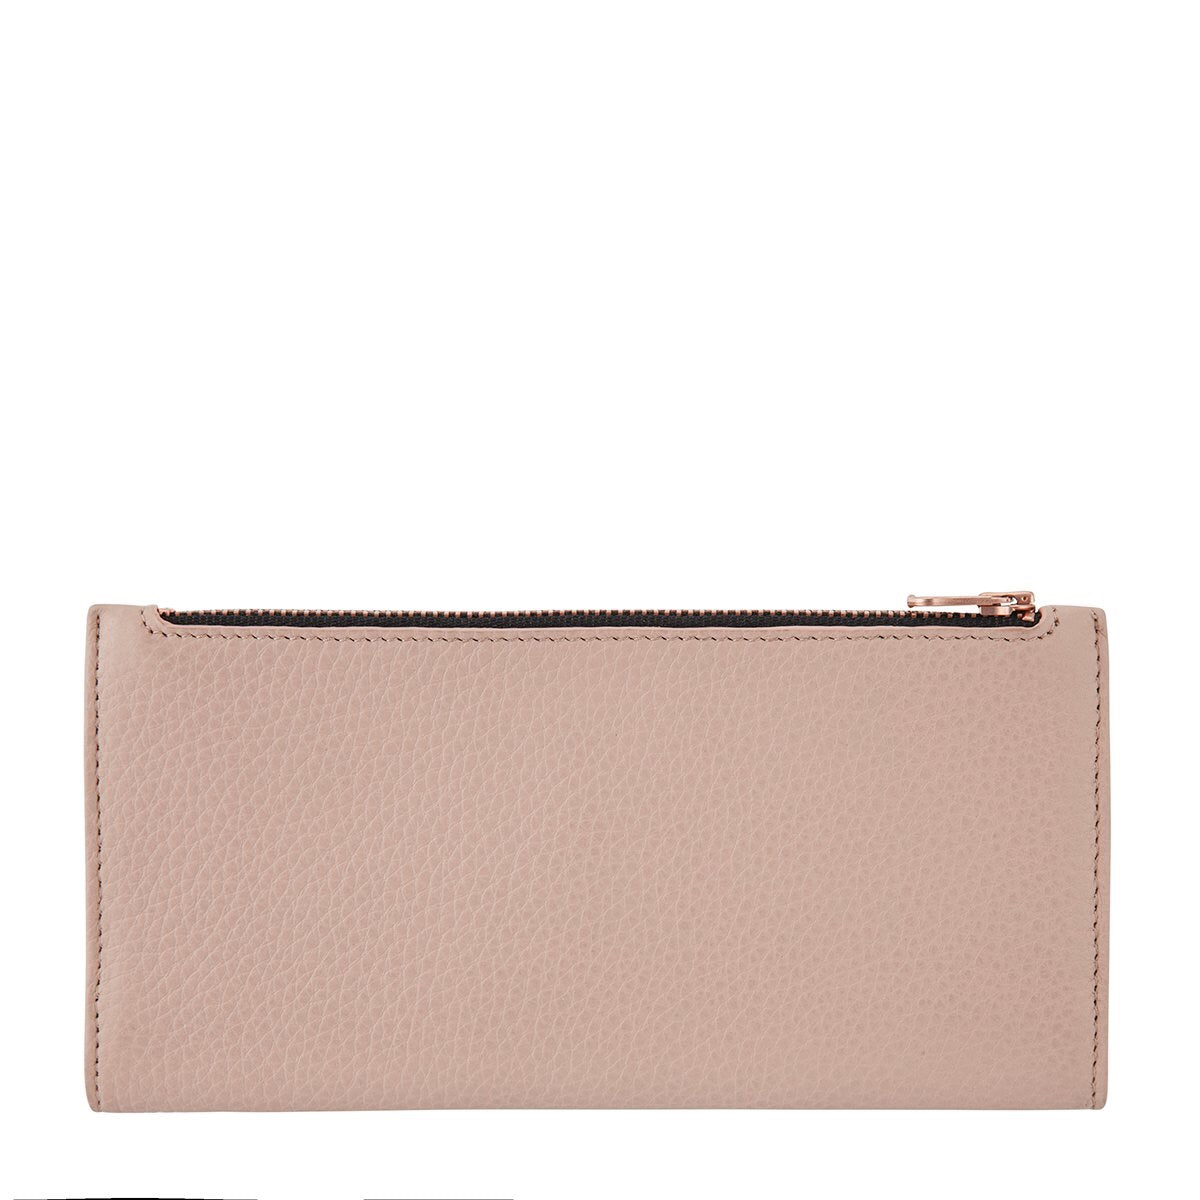 Status Anxiety - In The Beginning Wallet in Dusty Pink